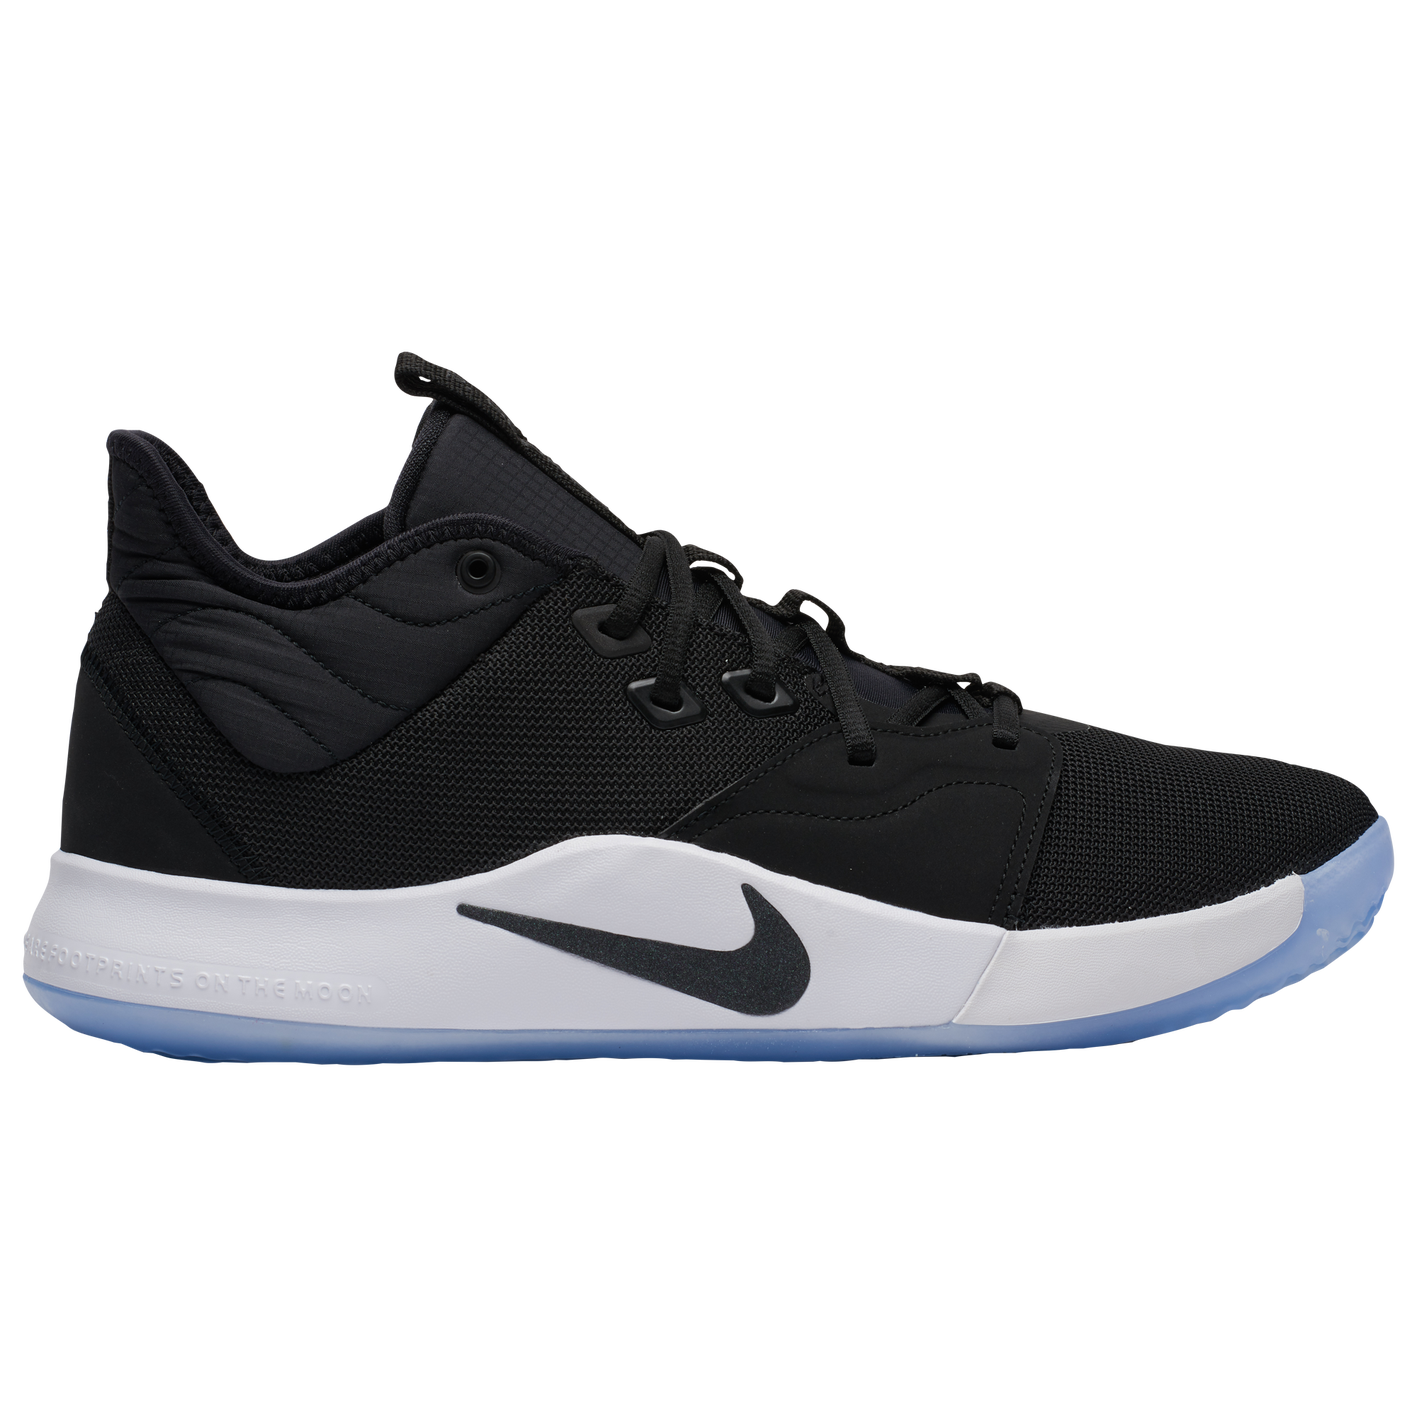 9313237b1340 Nike PG 3 - Men s - Basketball - Shoes - George